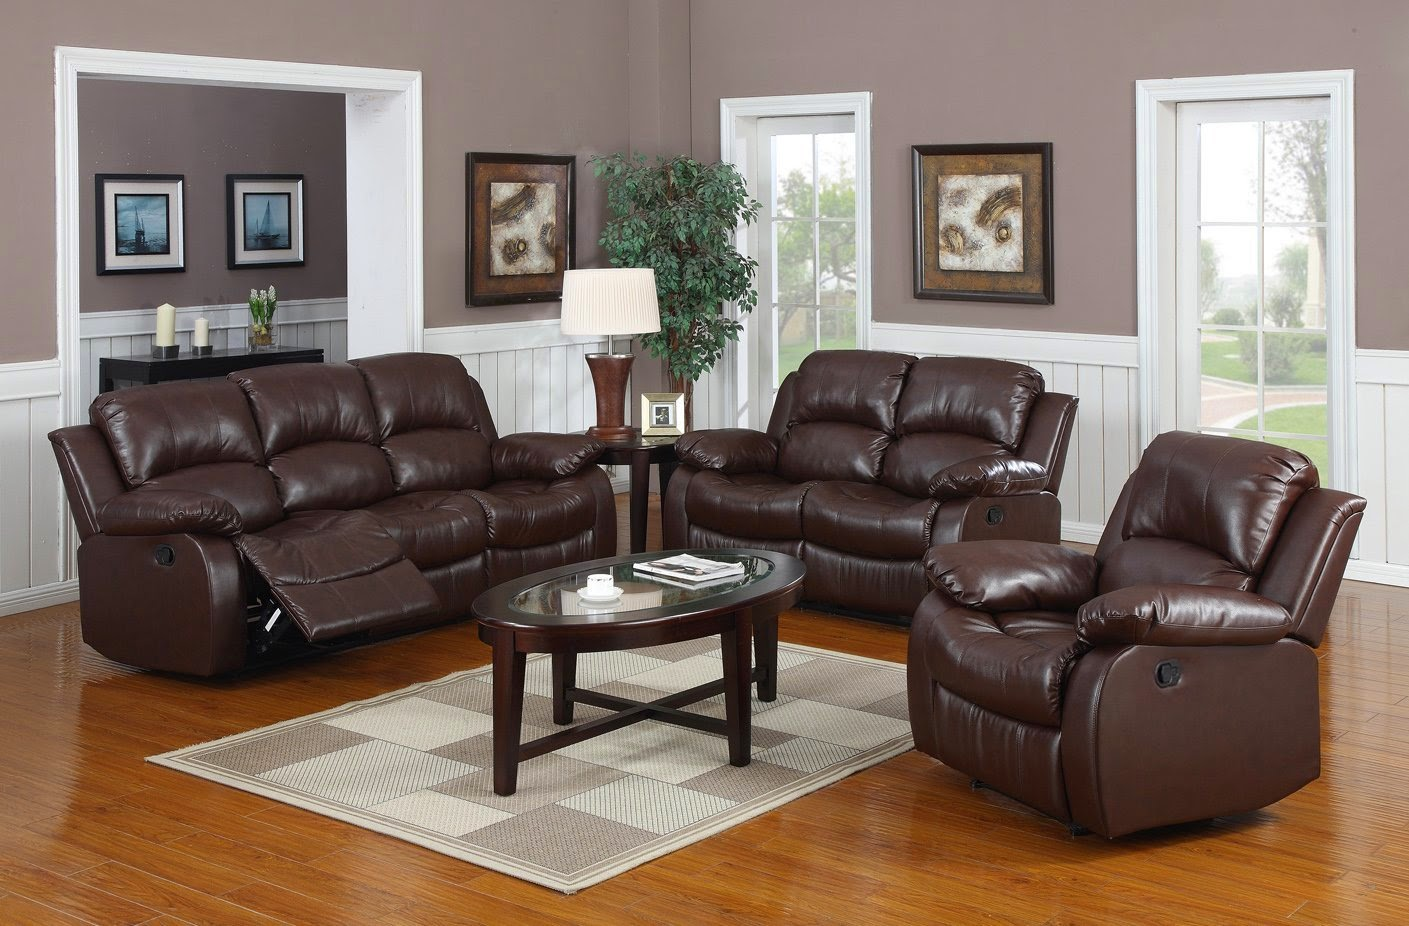 The best reclining leather sofa reviews leather recliner Reclining leather sofa and loveseat